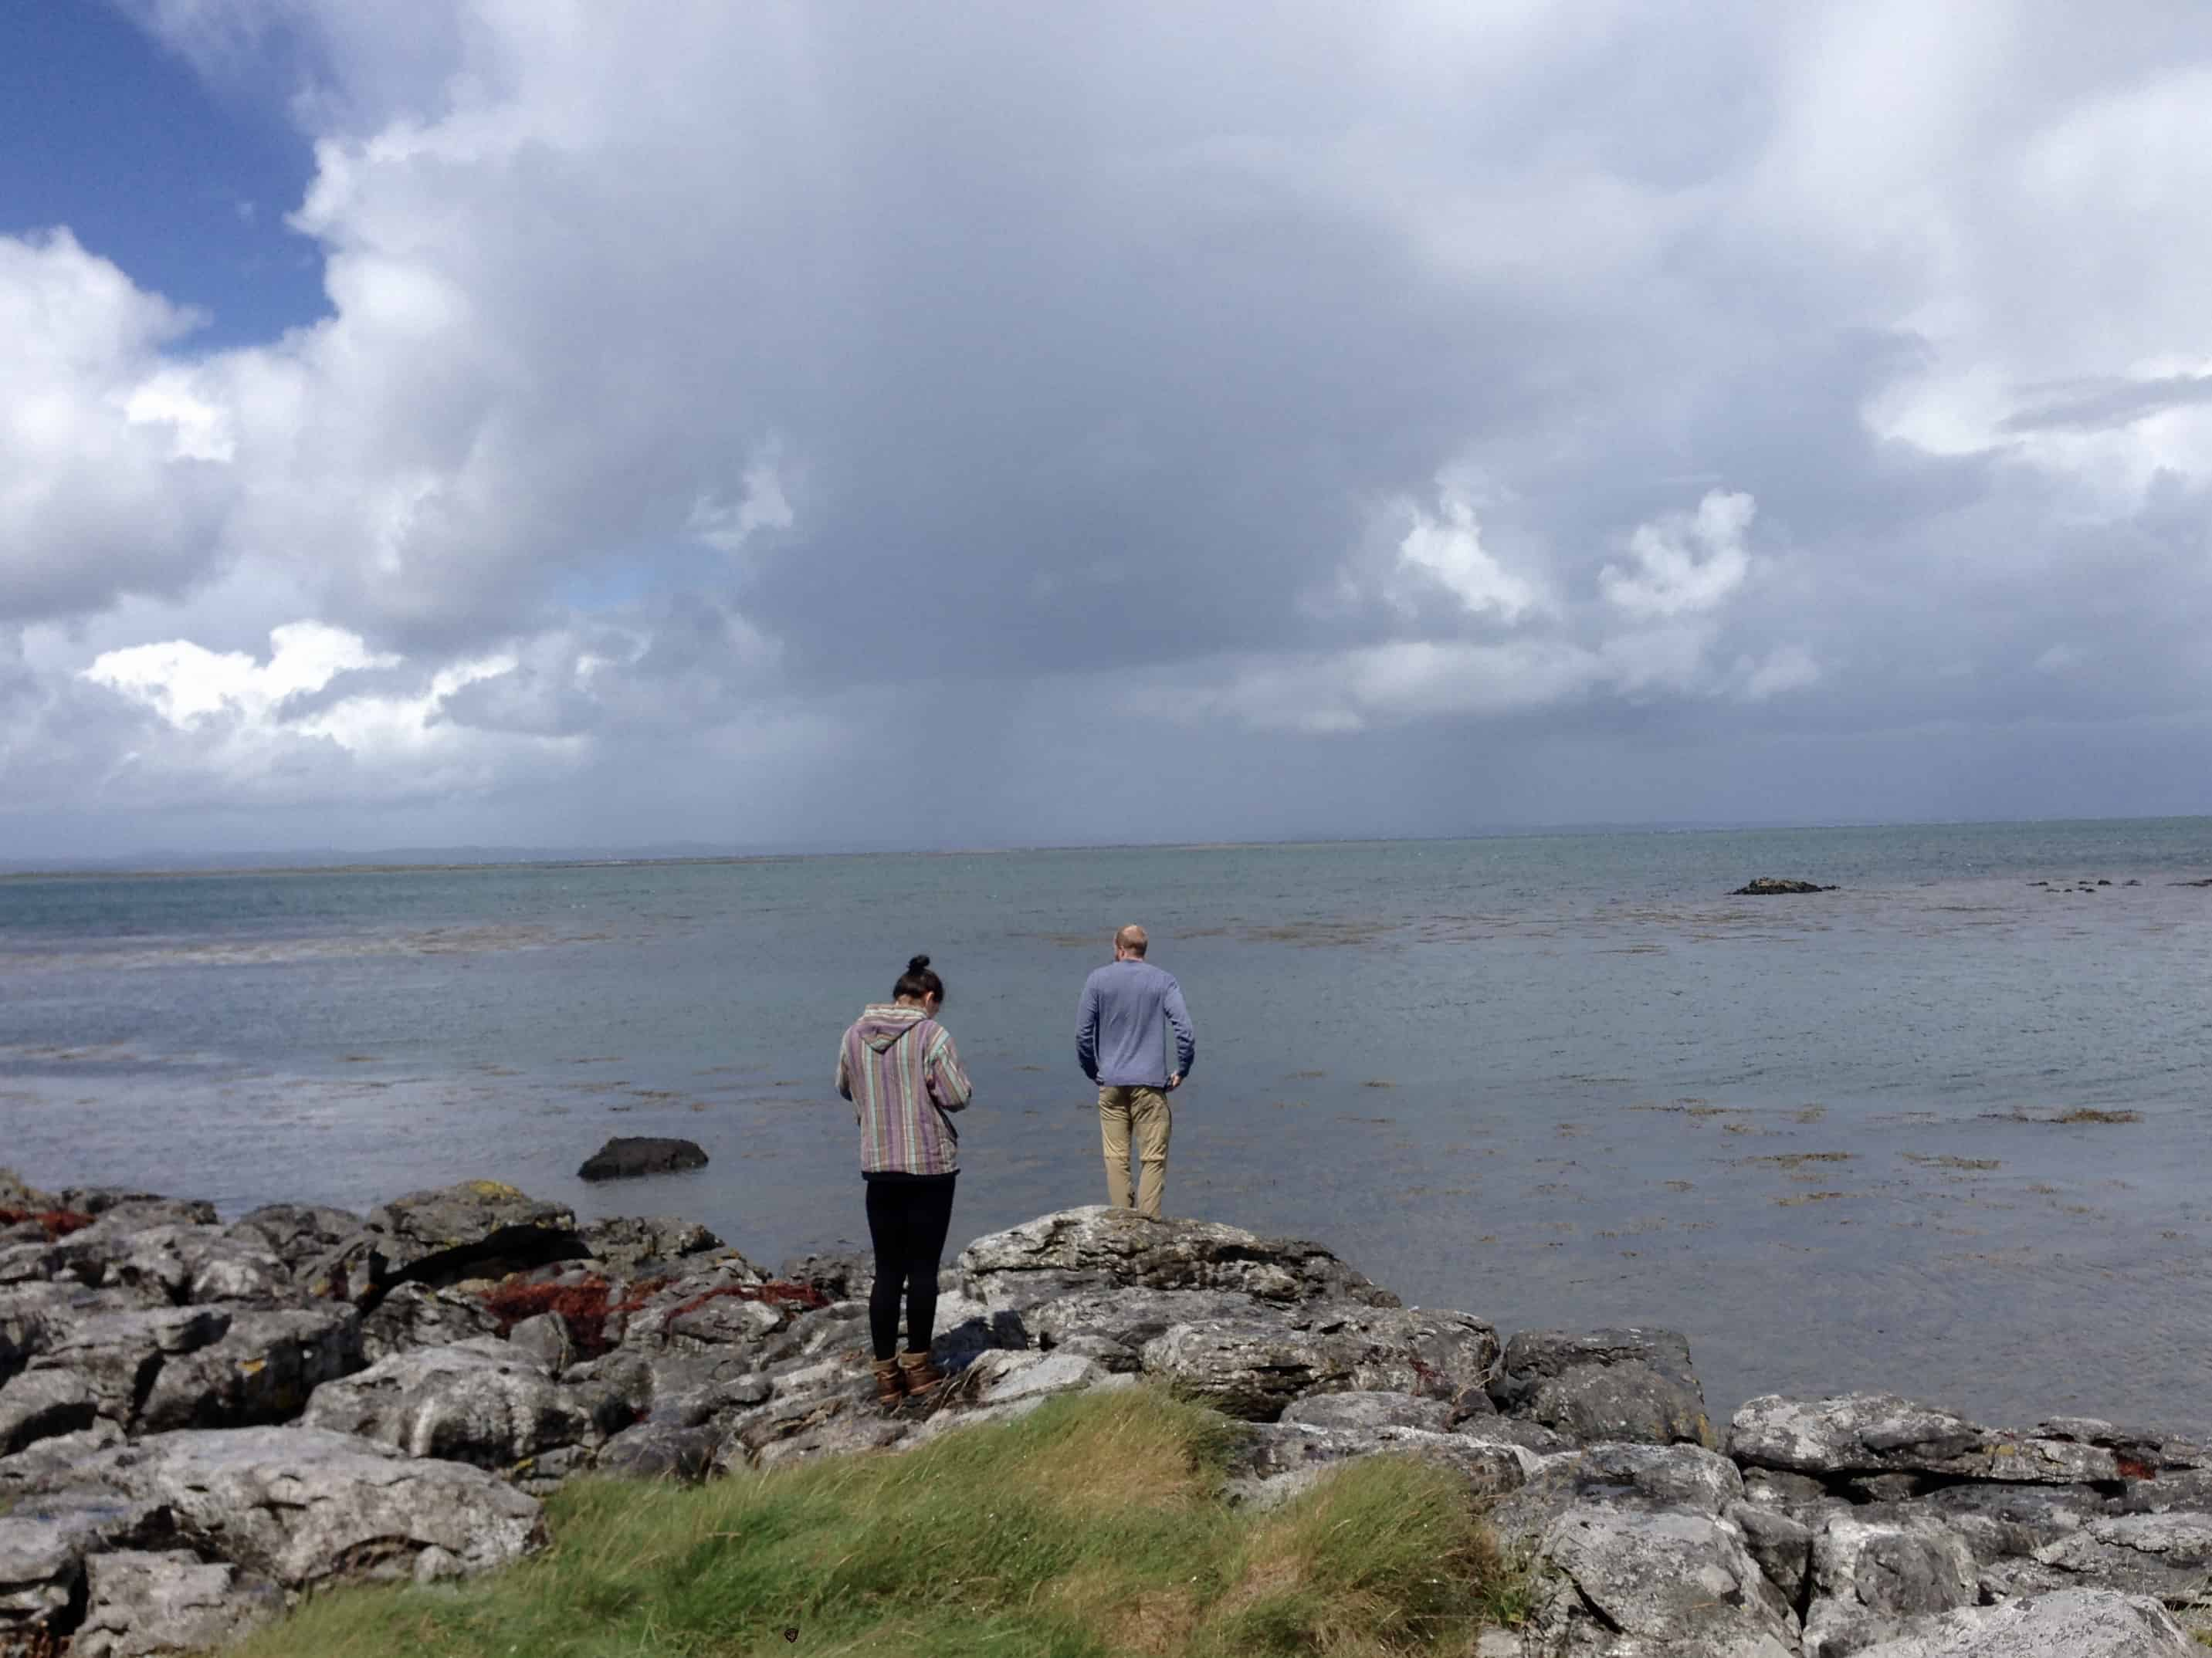 Overlooking the Wild Altantic Way (the coastline on the west side) in Ireland - one of our stops while hitchhiking